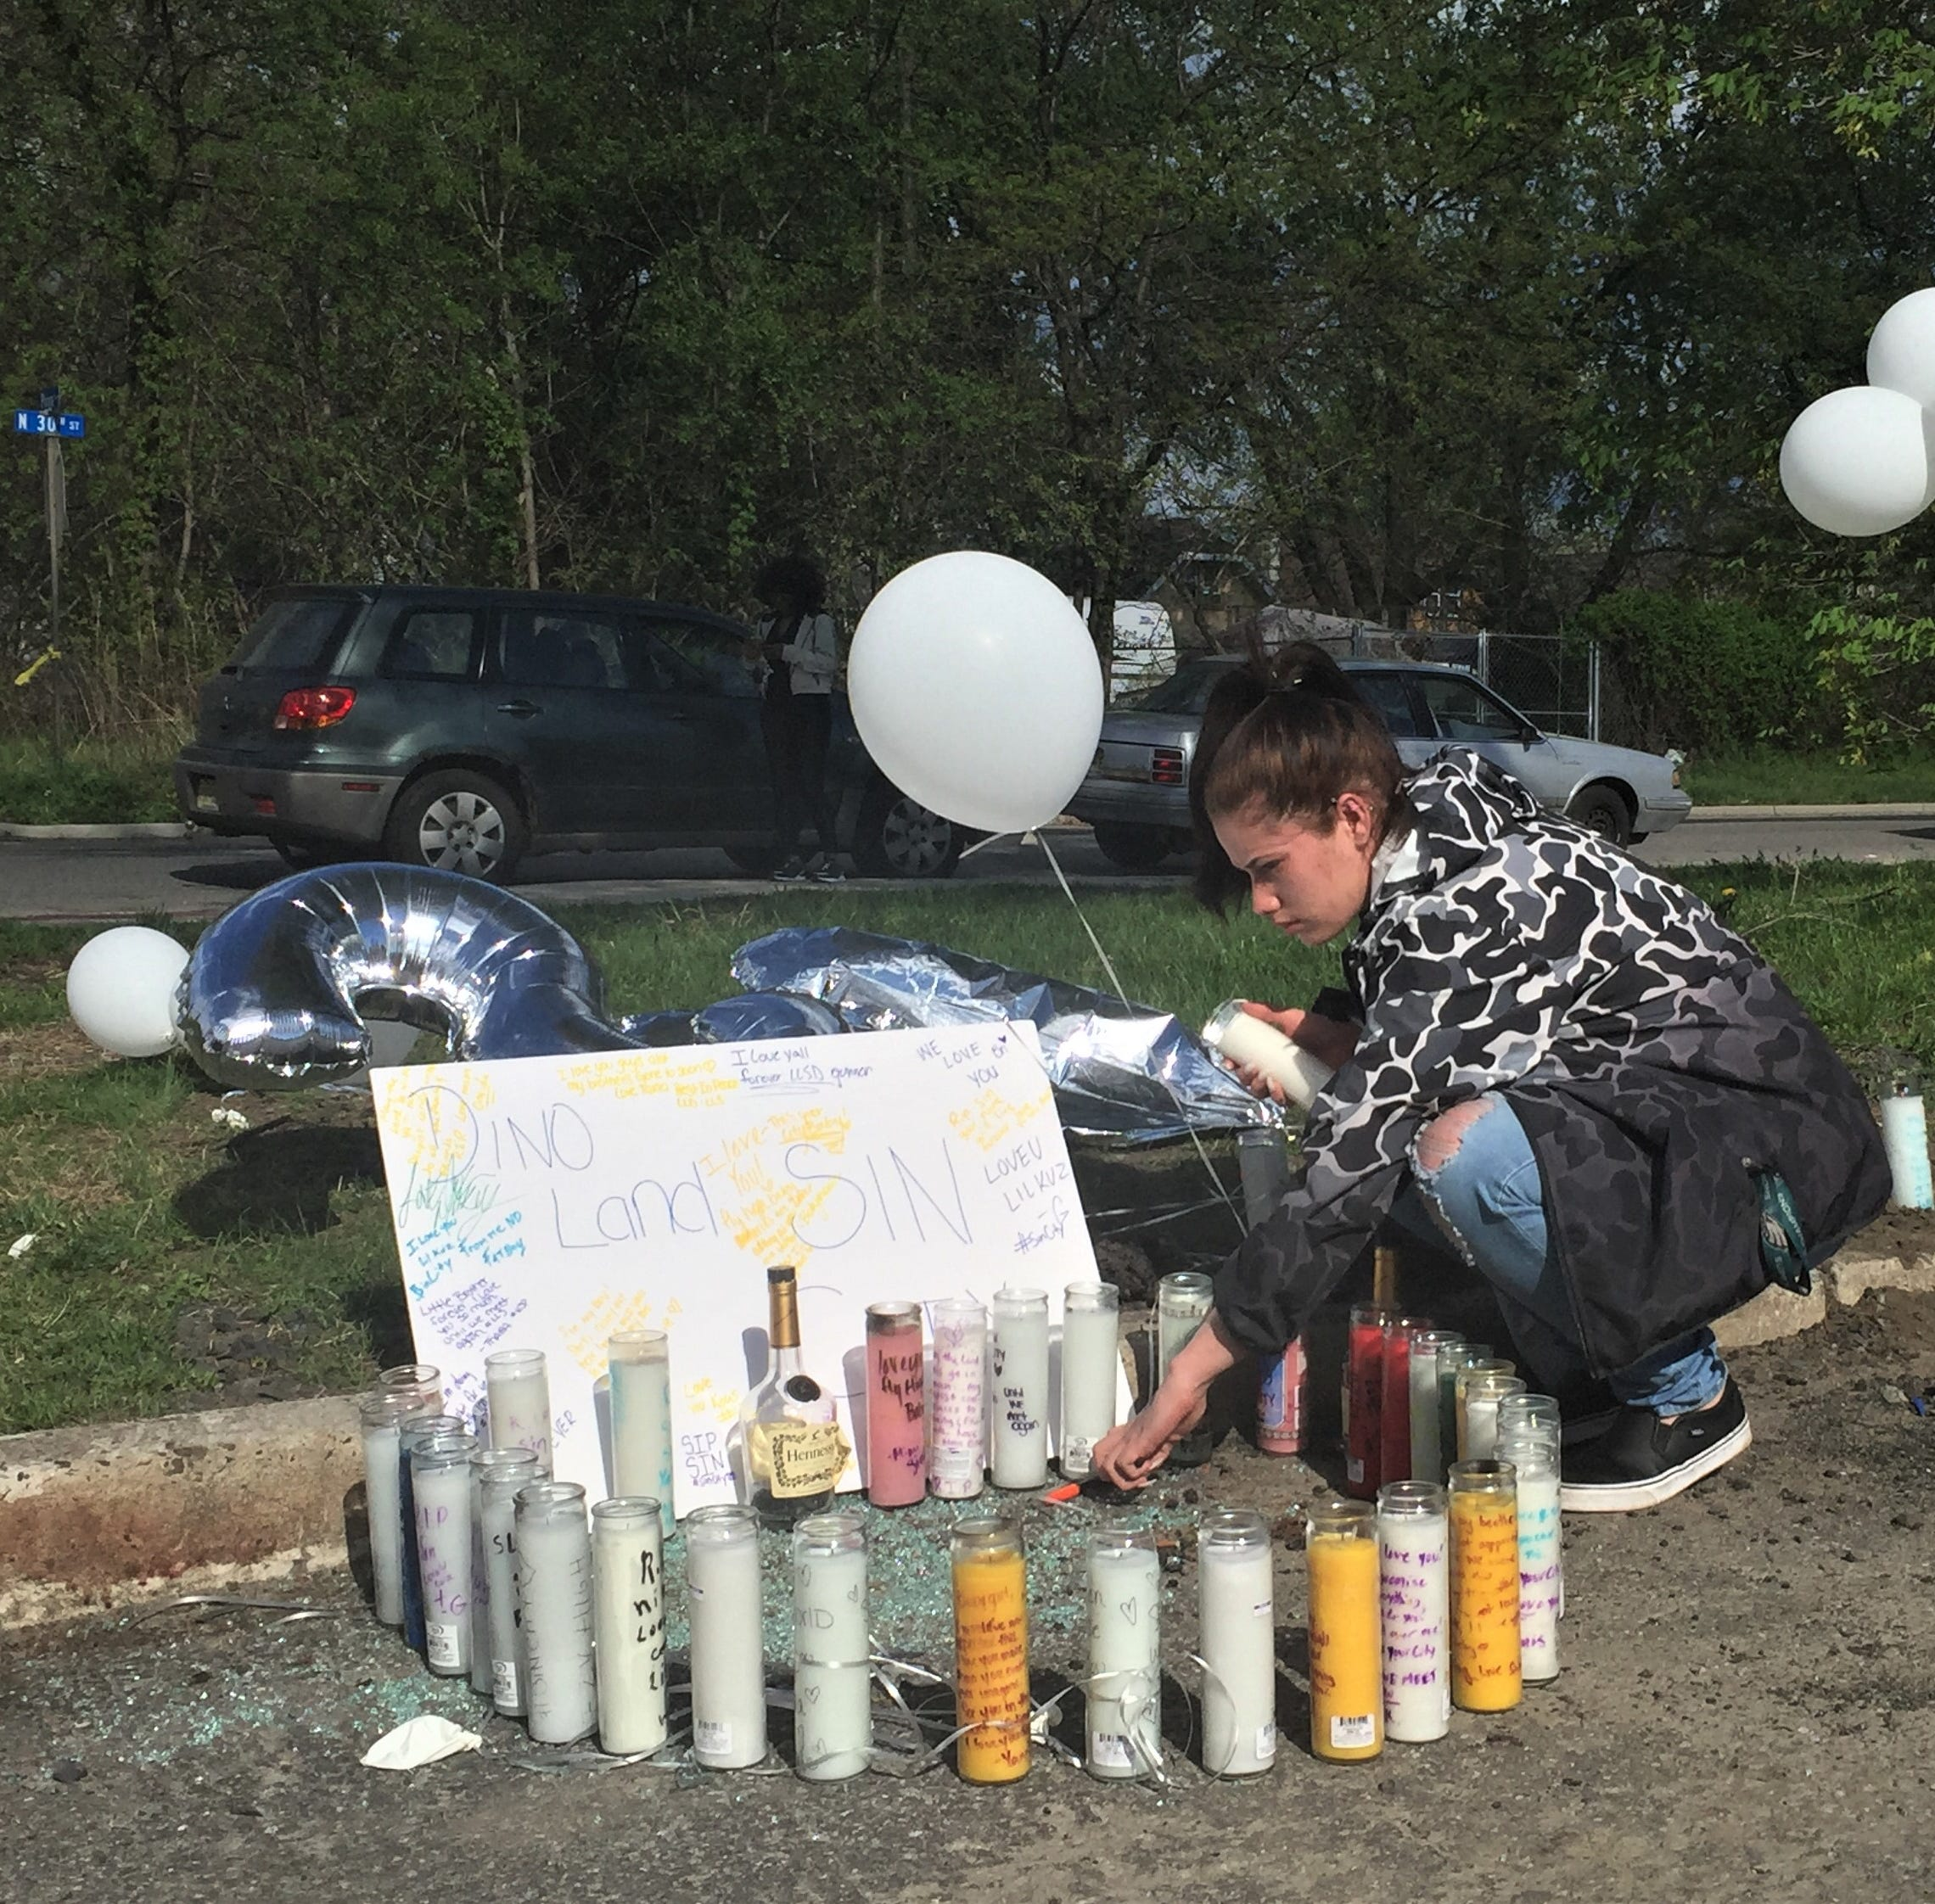 Update: Slain teen was recognized as one of Camden 'most improved students'